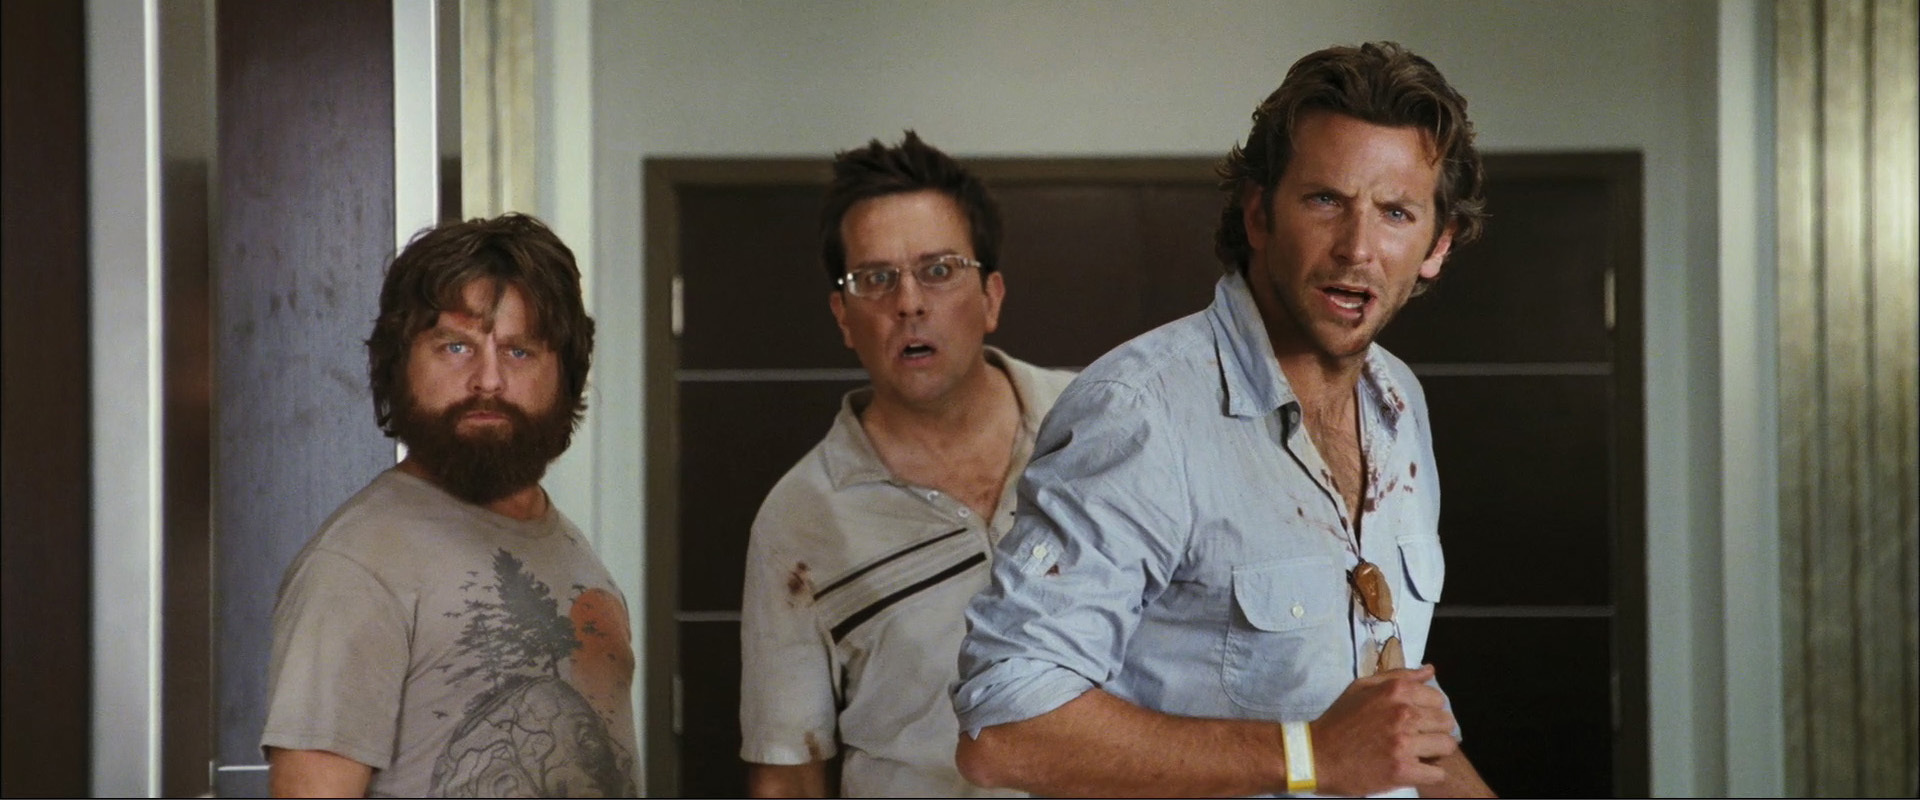 the hangover Subtitles the hangover - subtitles english thehangoverunrated720pblurayx264-refined, 1cd (eng) uploaded 2009-11-22, downloaded 53190x.